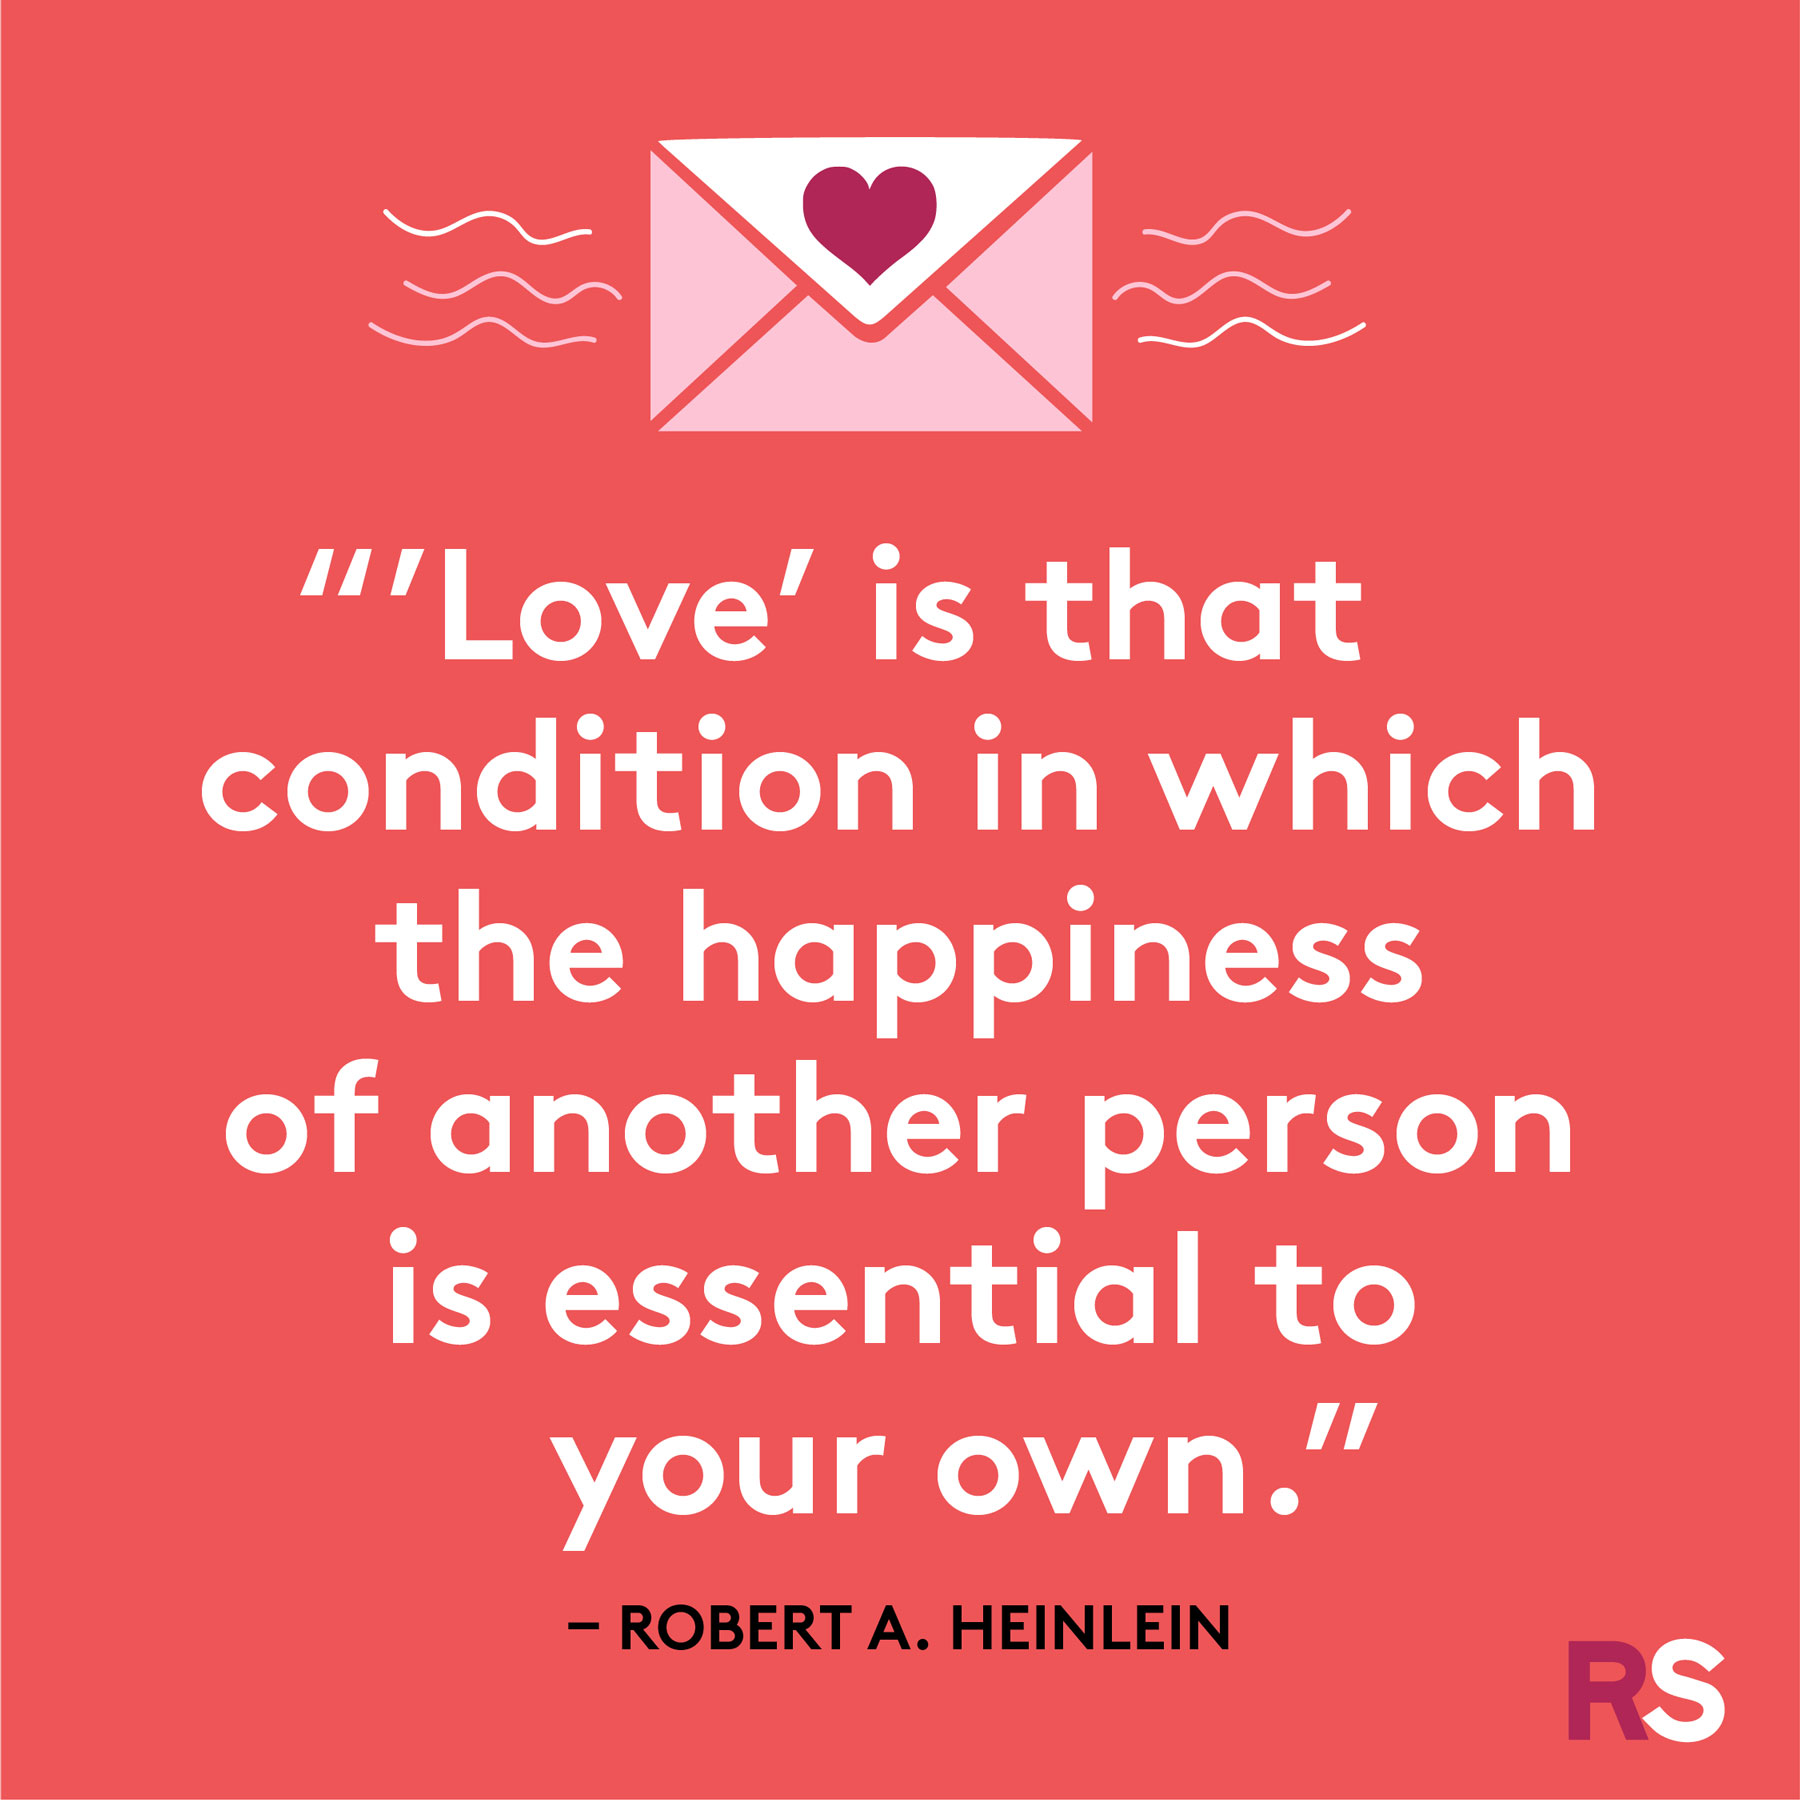 Love quotes, quotes about love - Robert A. Heinlein